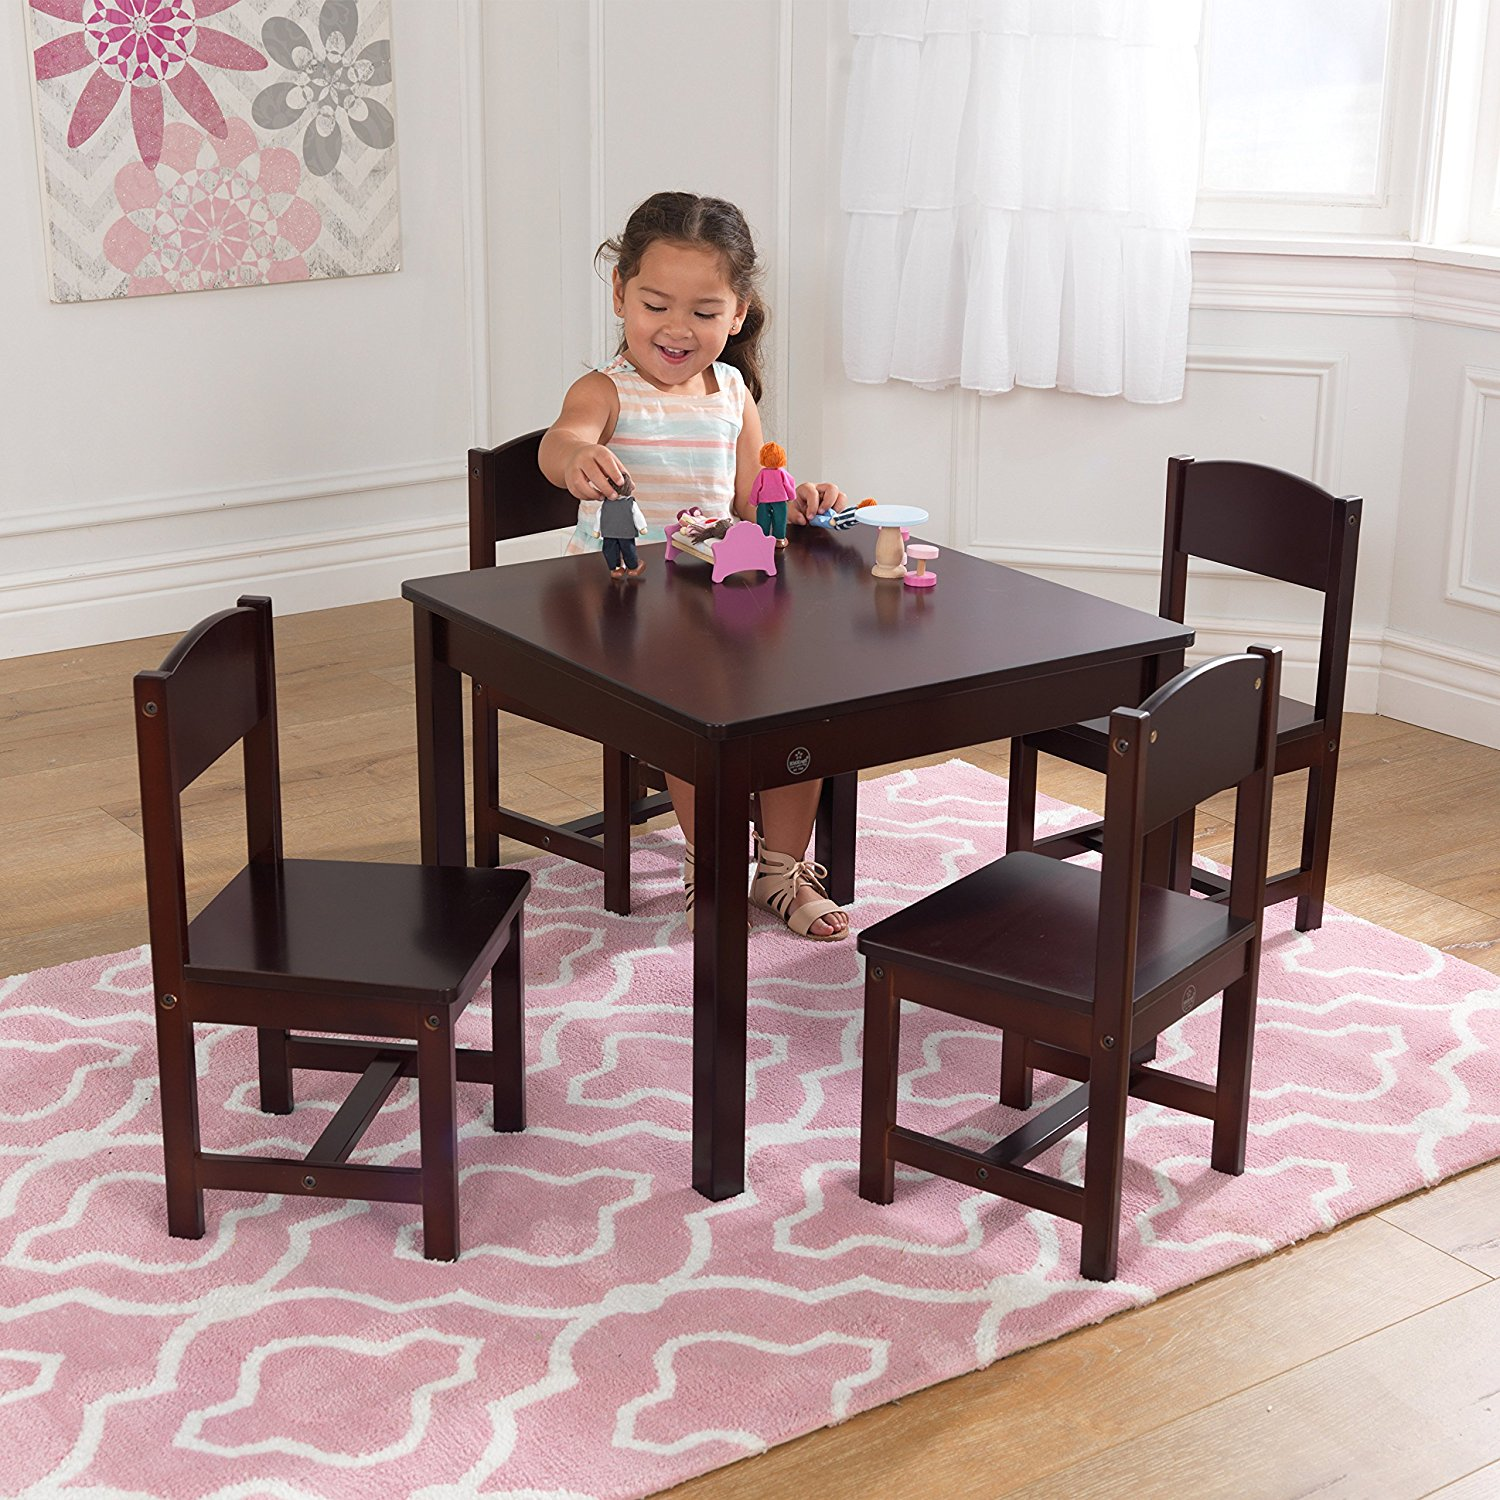 Farmhouse Table And Chairs Set Kidkraft Farmhouse Table And Chair Set 66 15 Reg 127 99